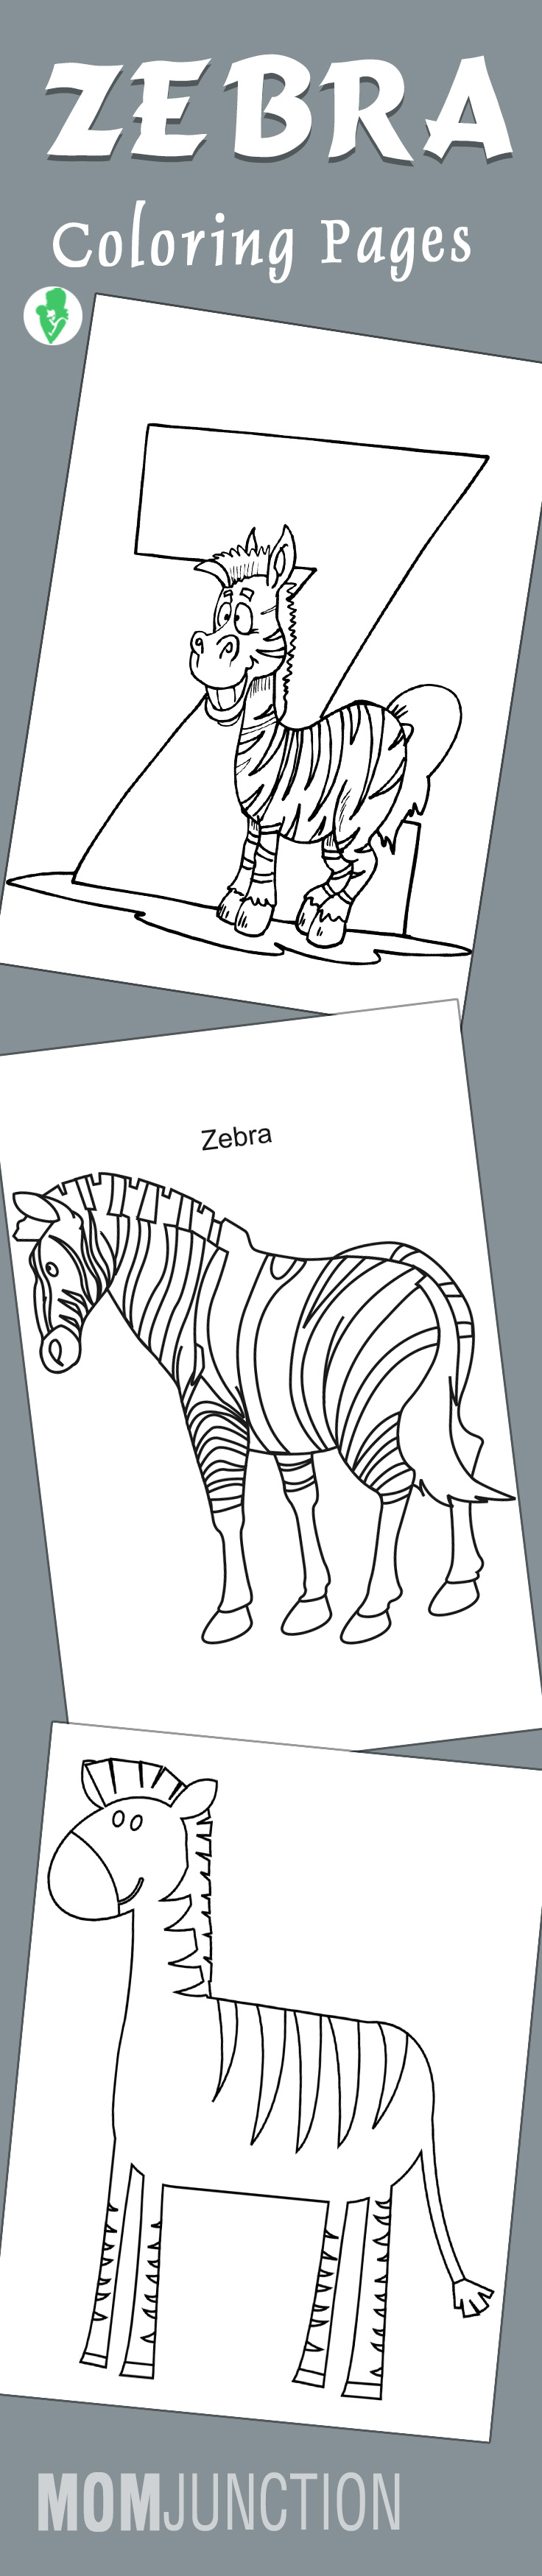 Top 20 Free Printable Zebra Coloring Pages Online | Free printable